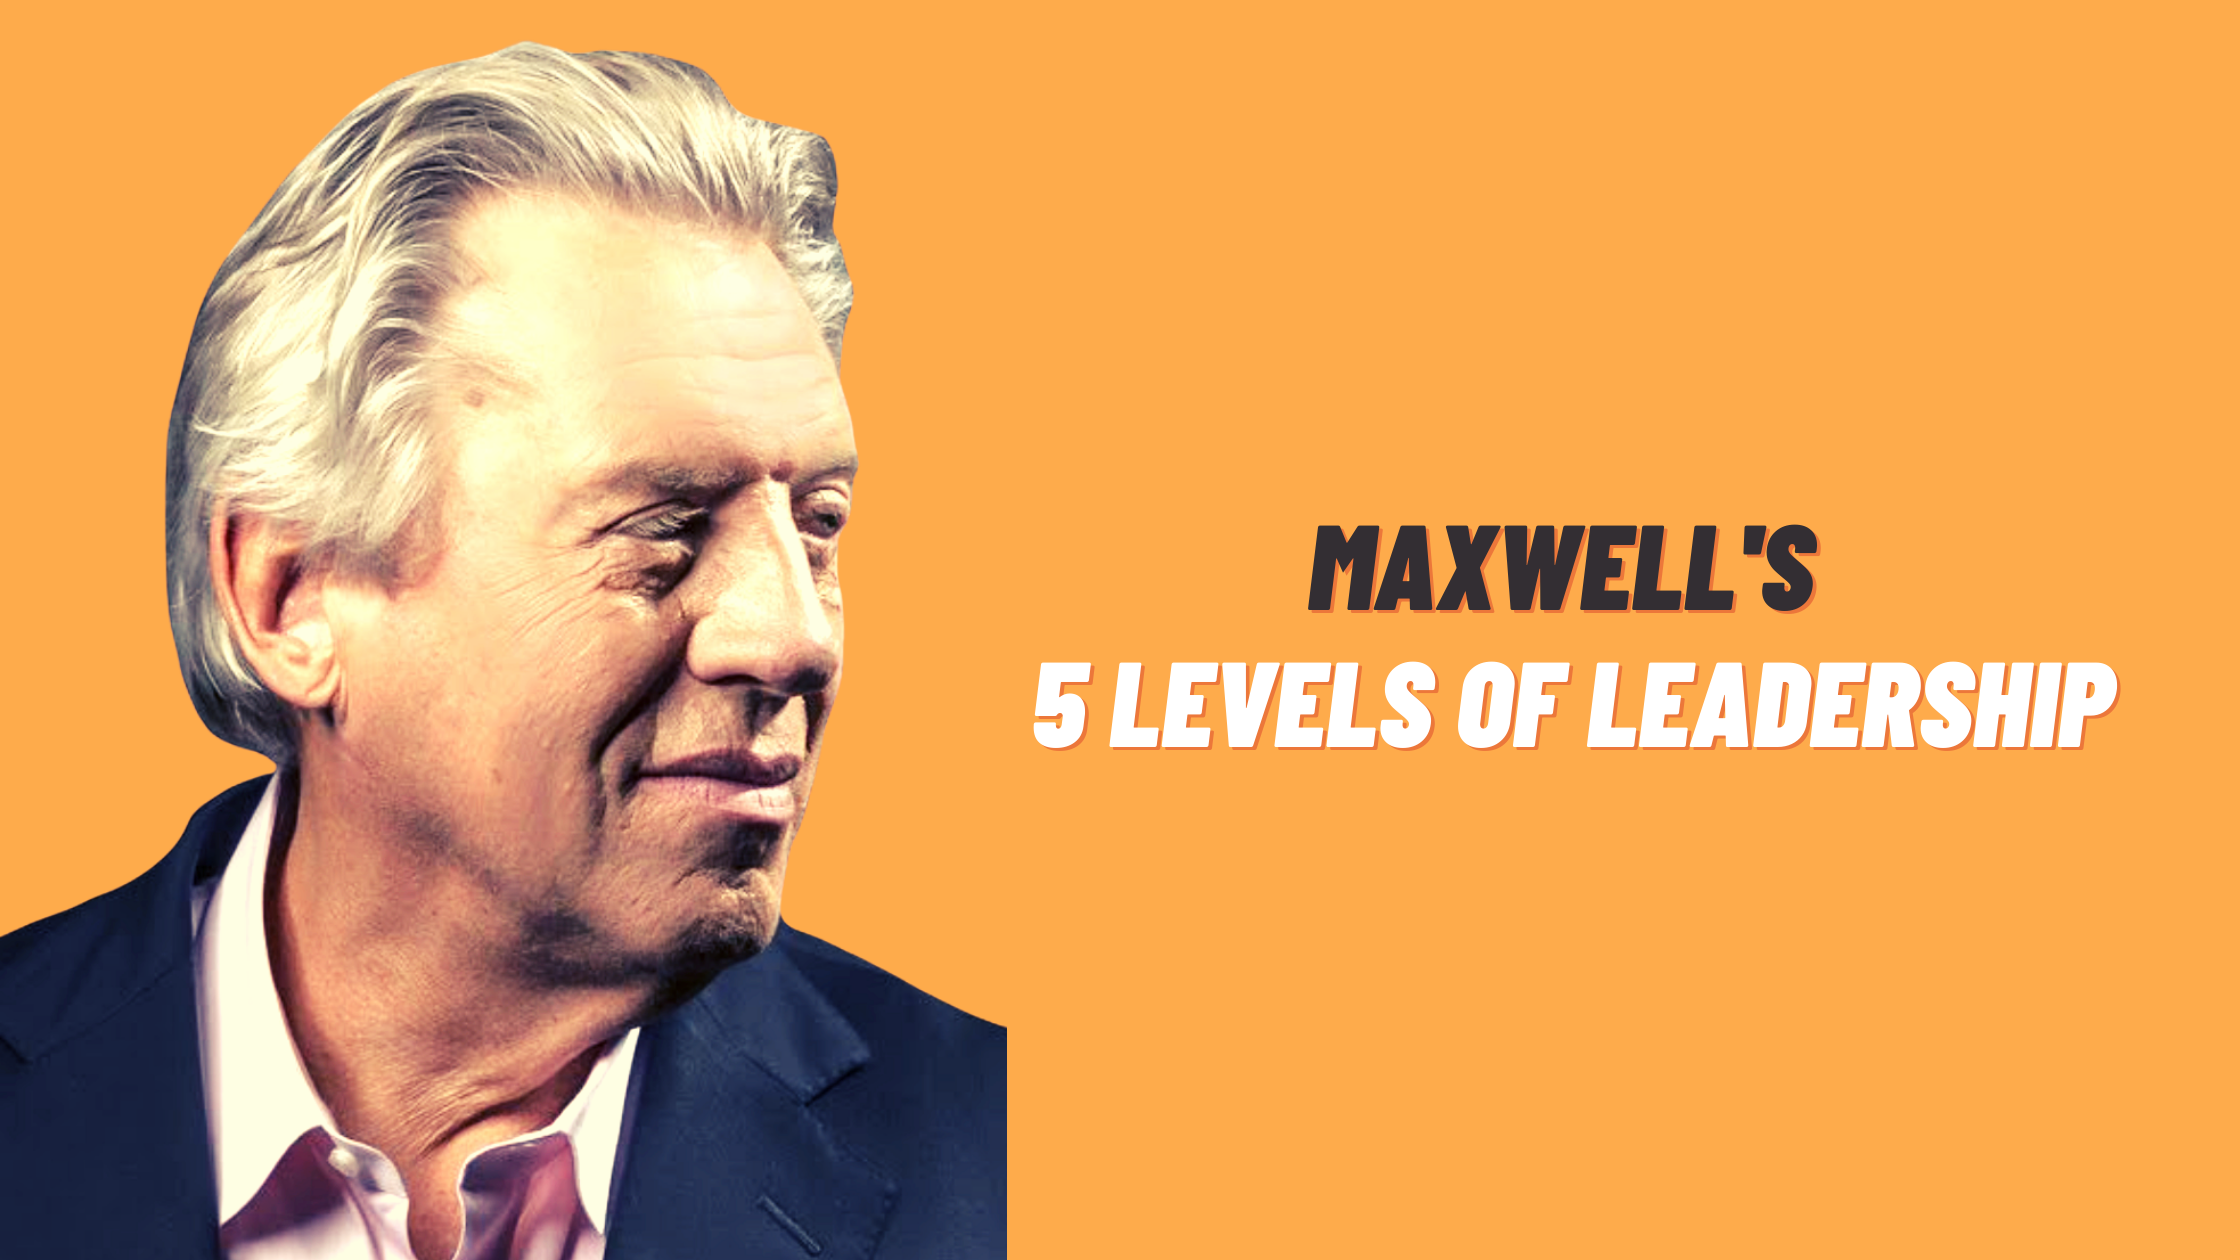 Maxwell's 5 Levels of Leadership